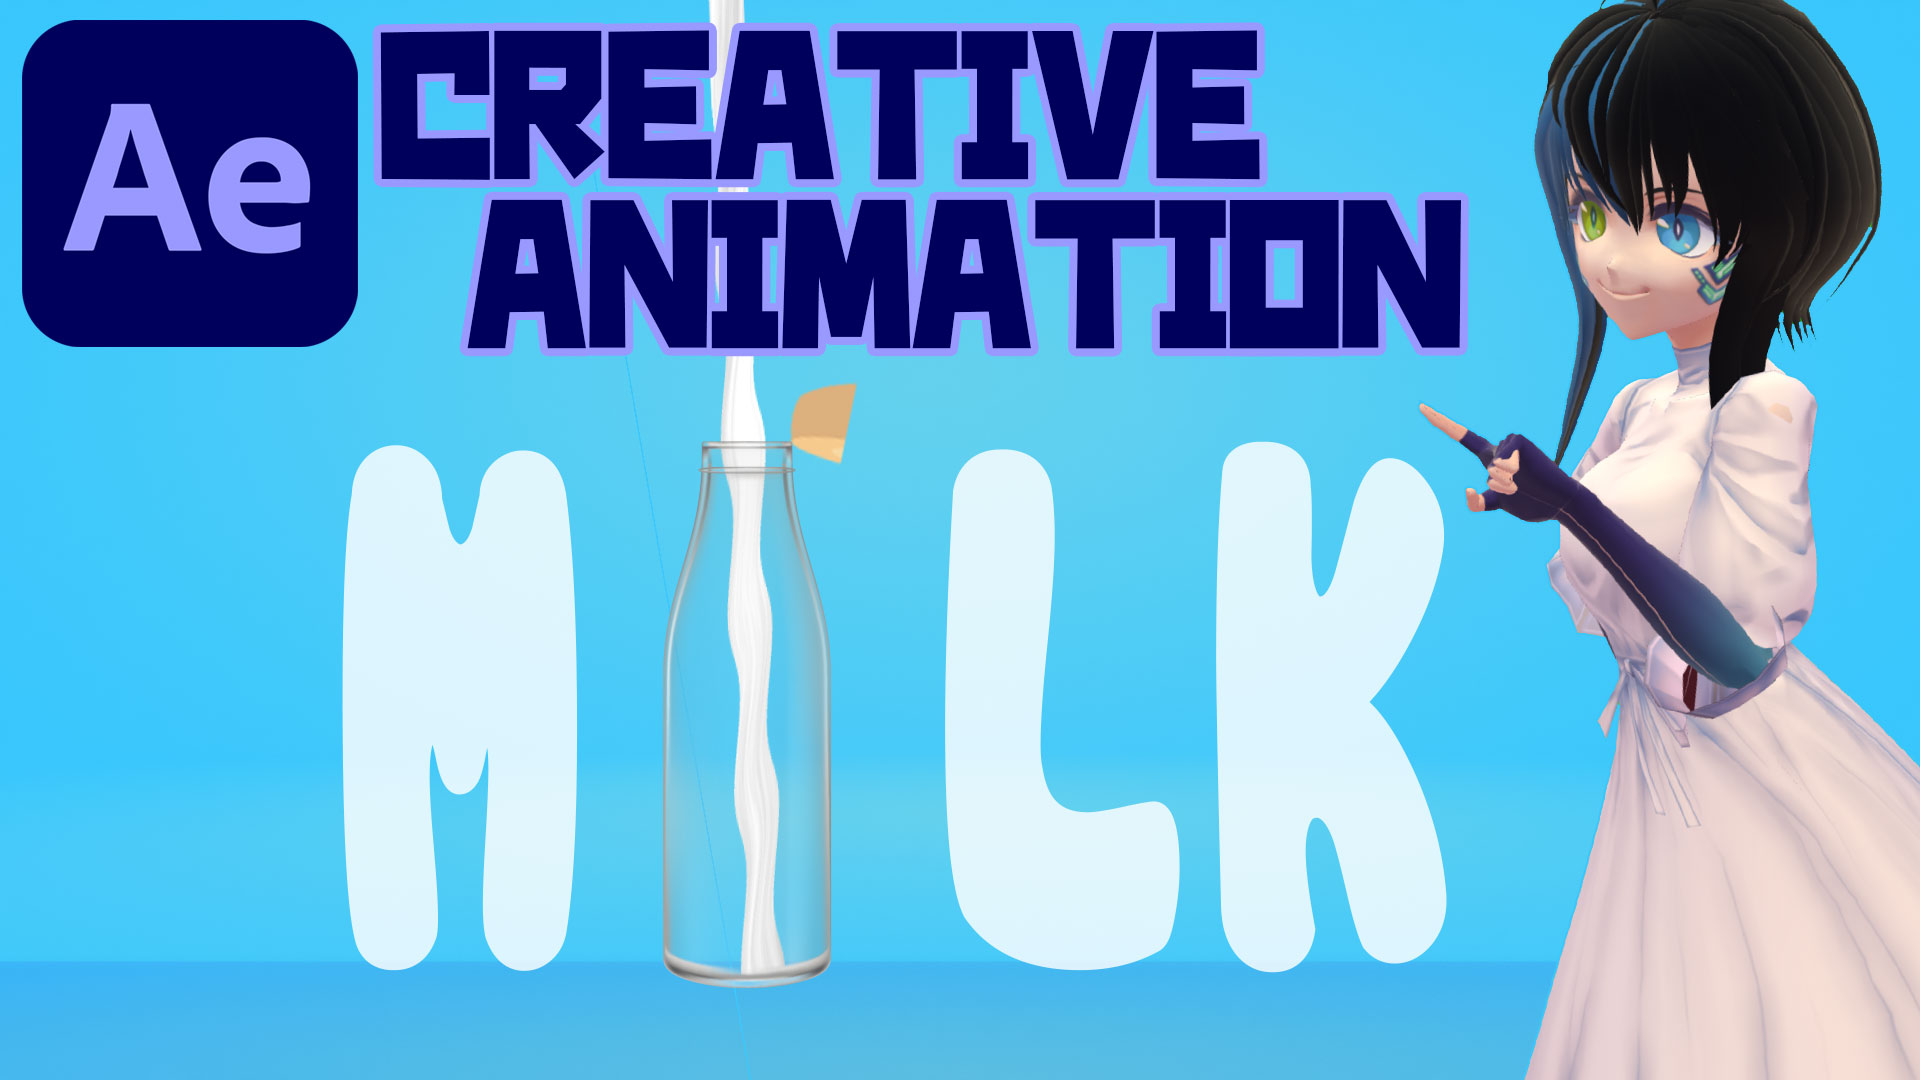 POURING MILK ANIMATION